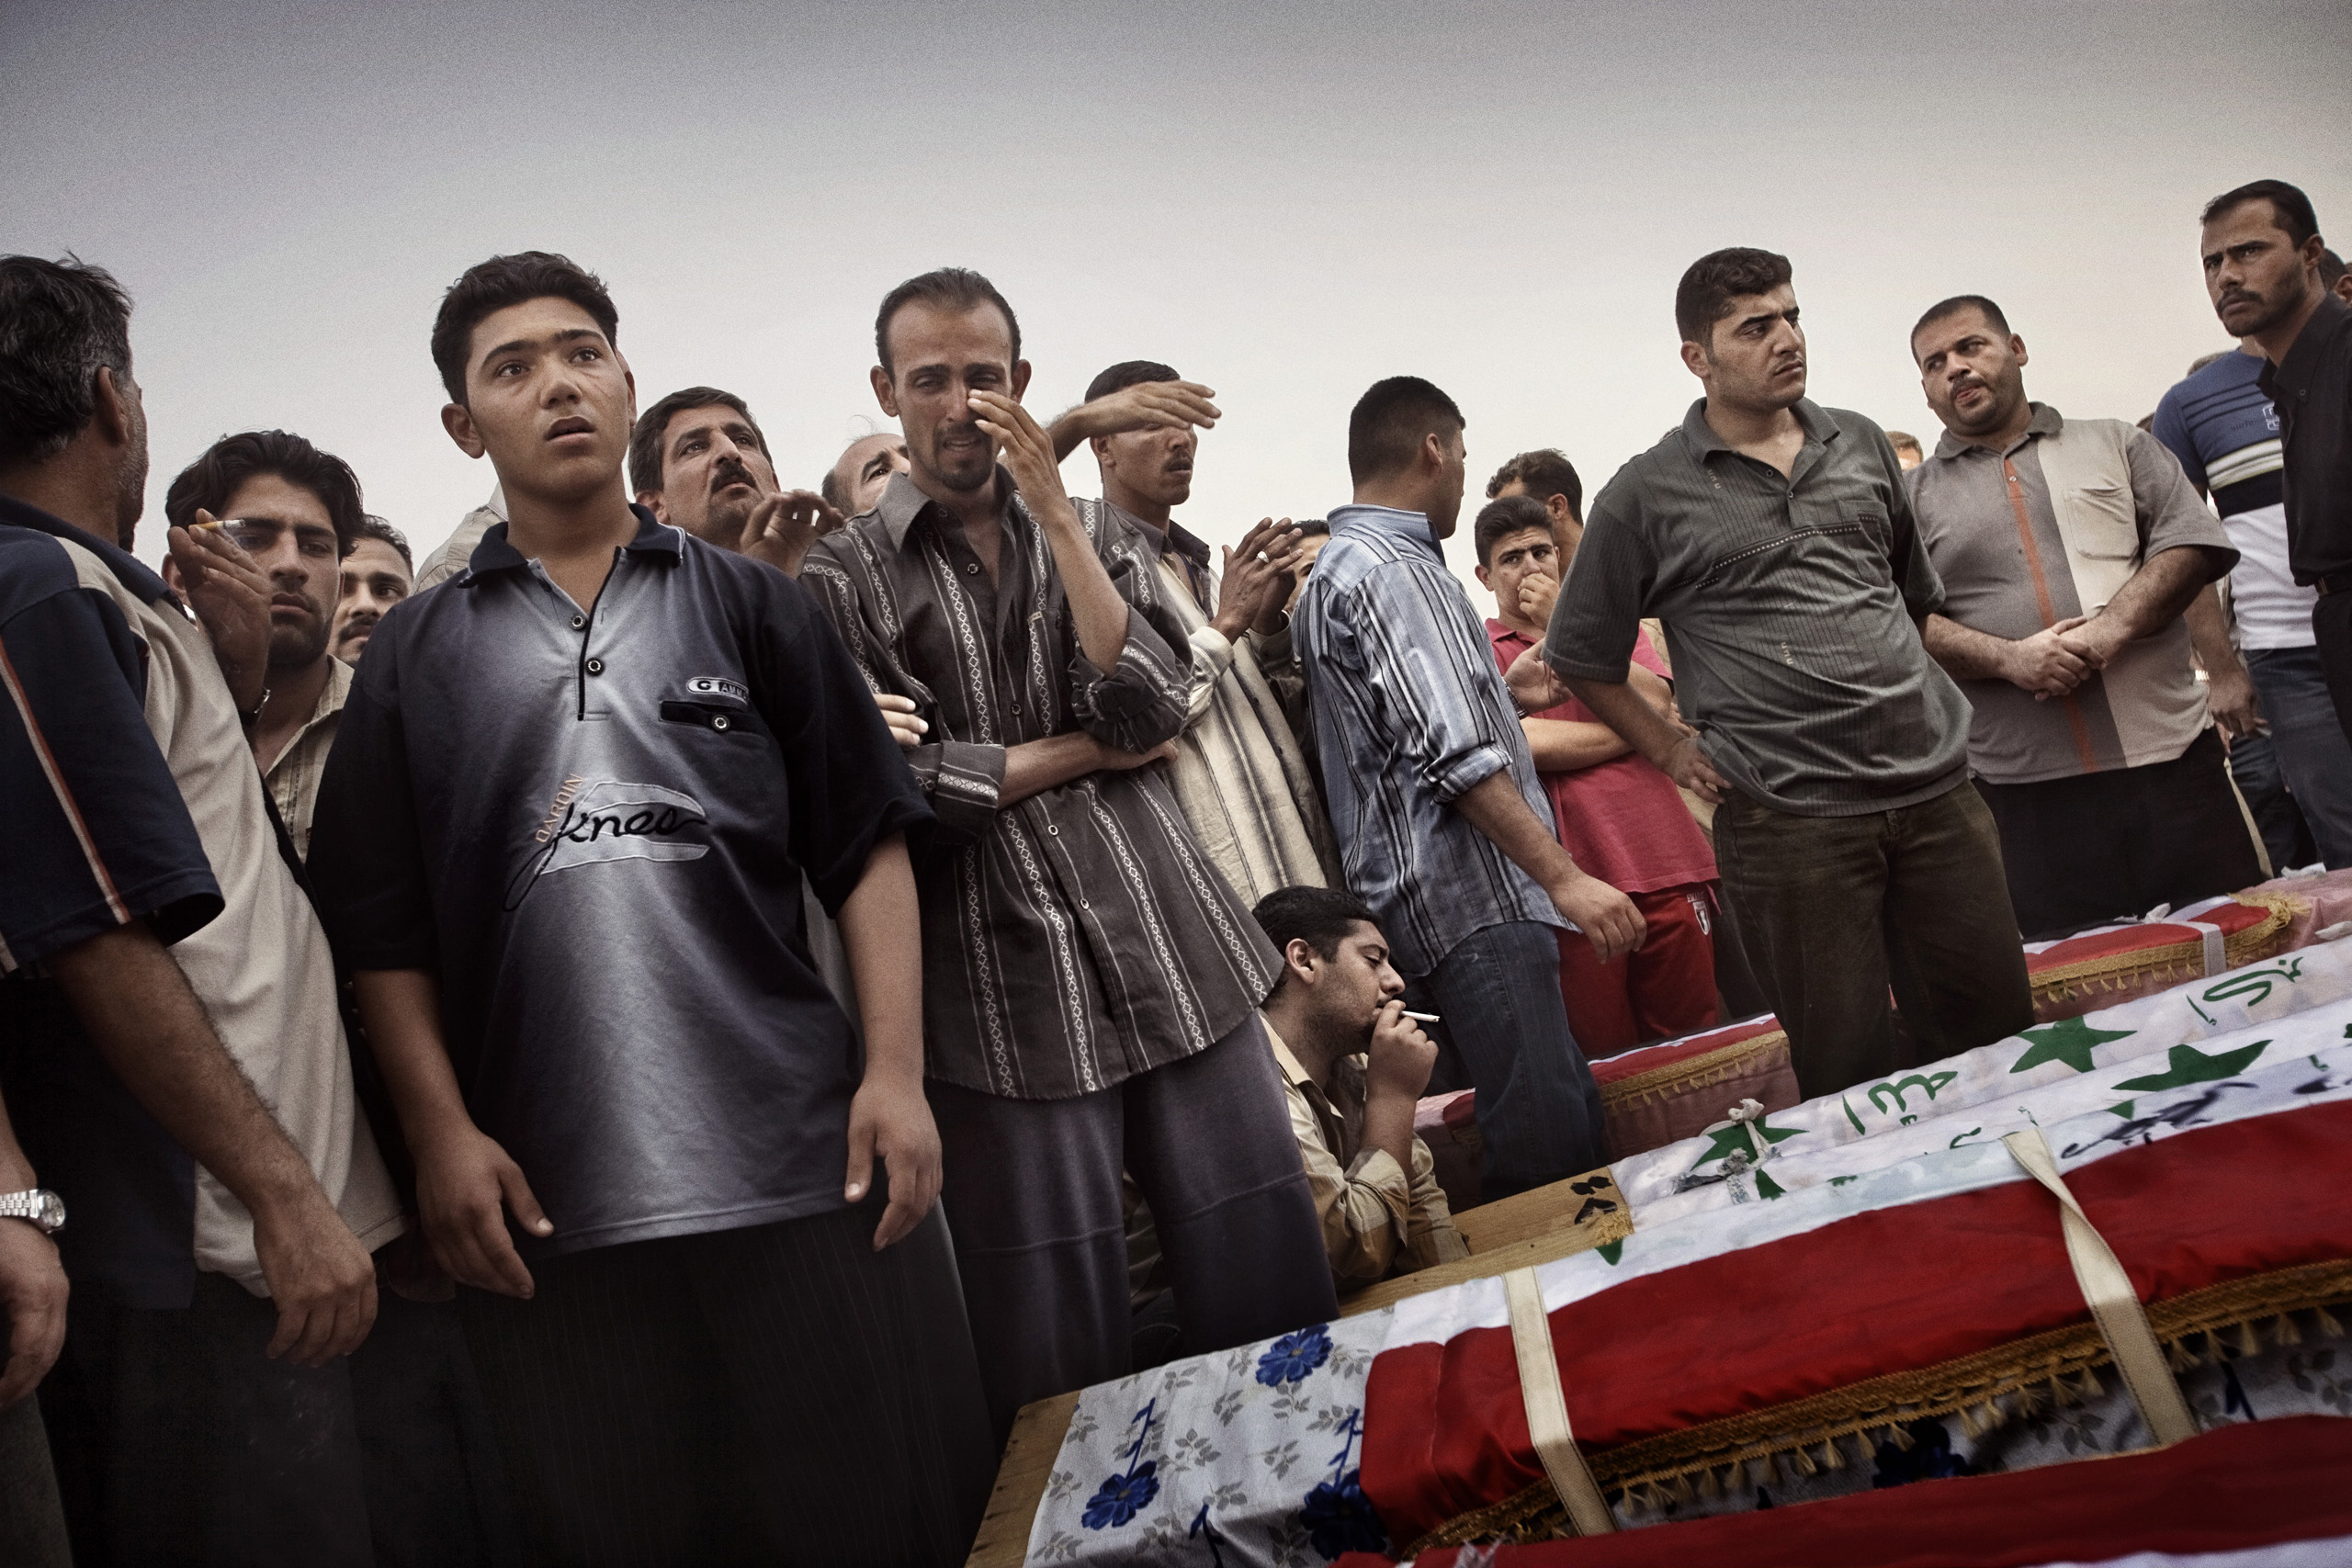 A funeral on Oct 7, 2005, in Baghdad, Iraq, for 22 men who were found handcuffed and shot dead in eastern Iraq. According to family members, the men, mostly Sunni, were taken from their homes by the special forces of the interior ministry, an almost exclusively Shi'ite counter-insurgency unit. They were found handcuffed and shot dead in a village on the Iraqi Iranian border, Oct. 5, 2005.